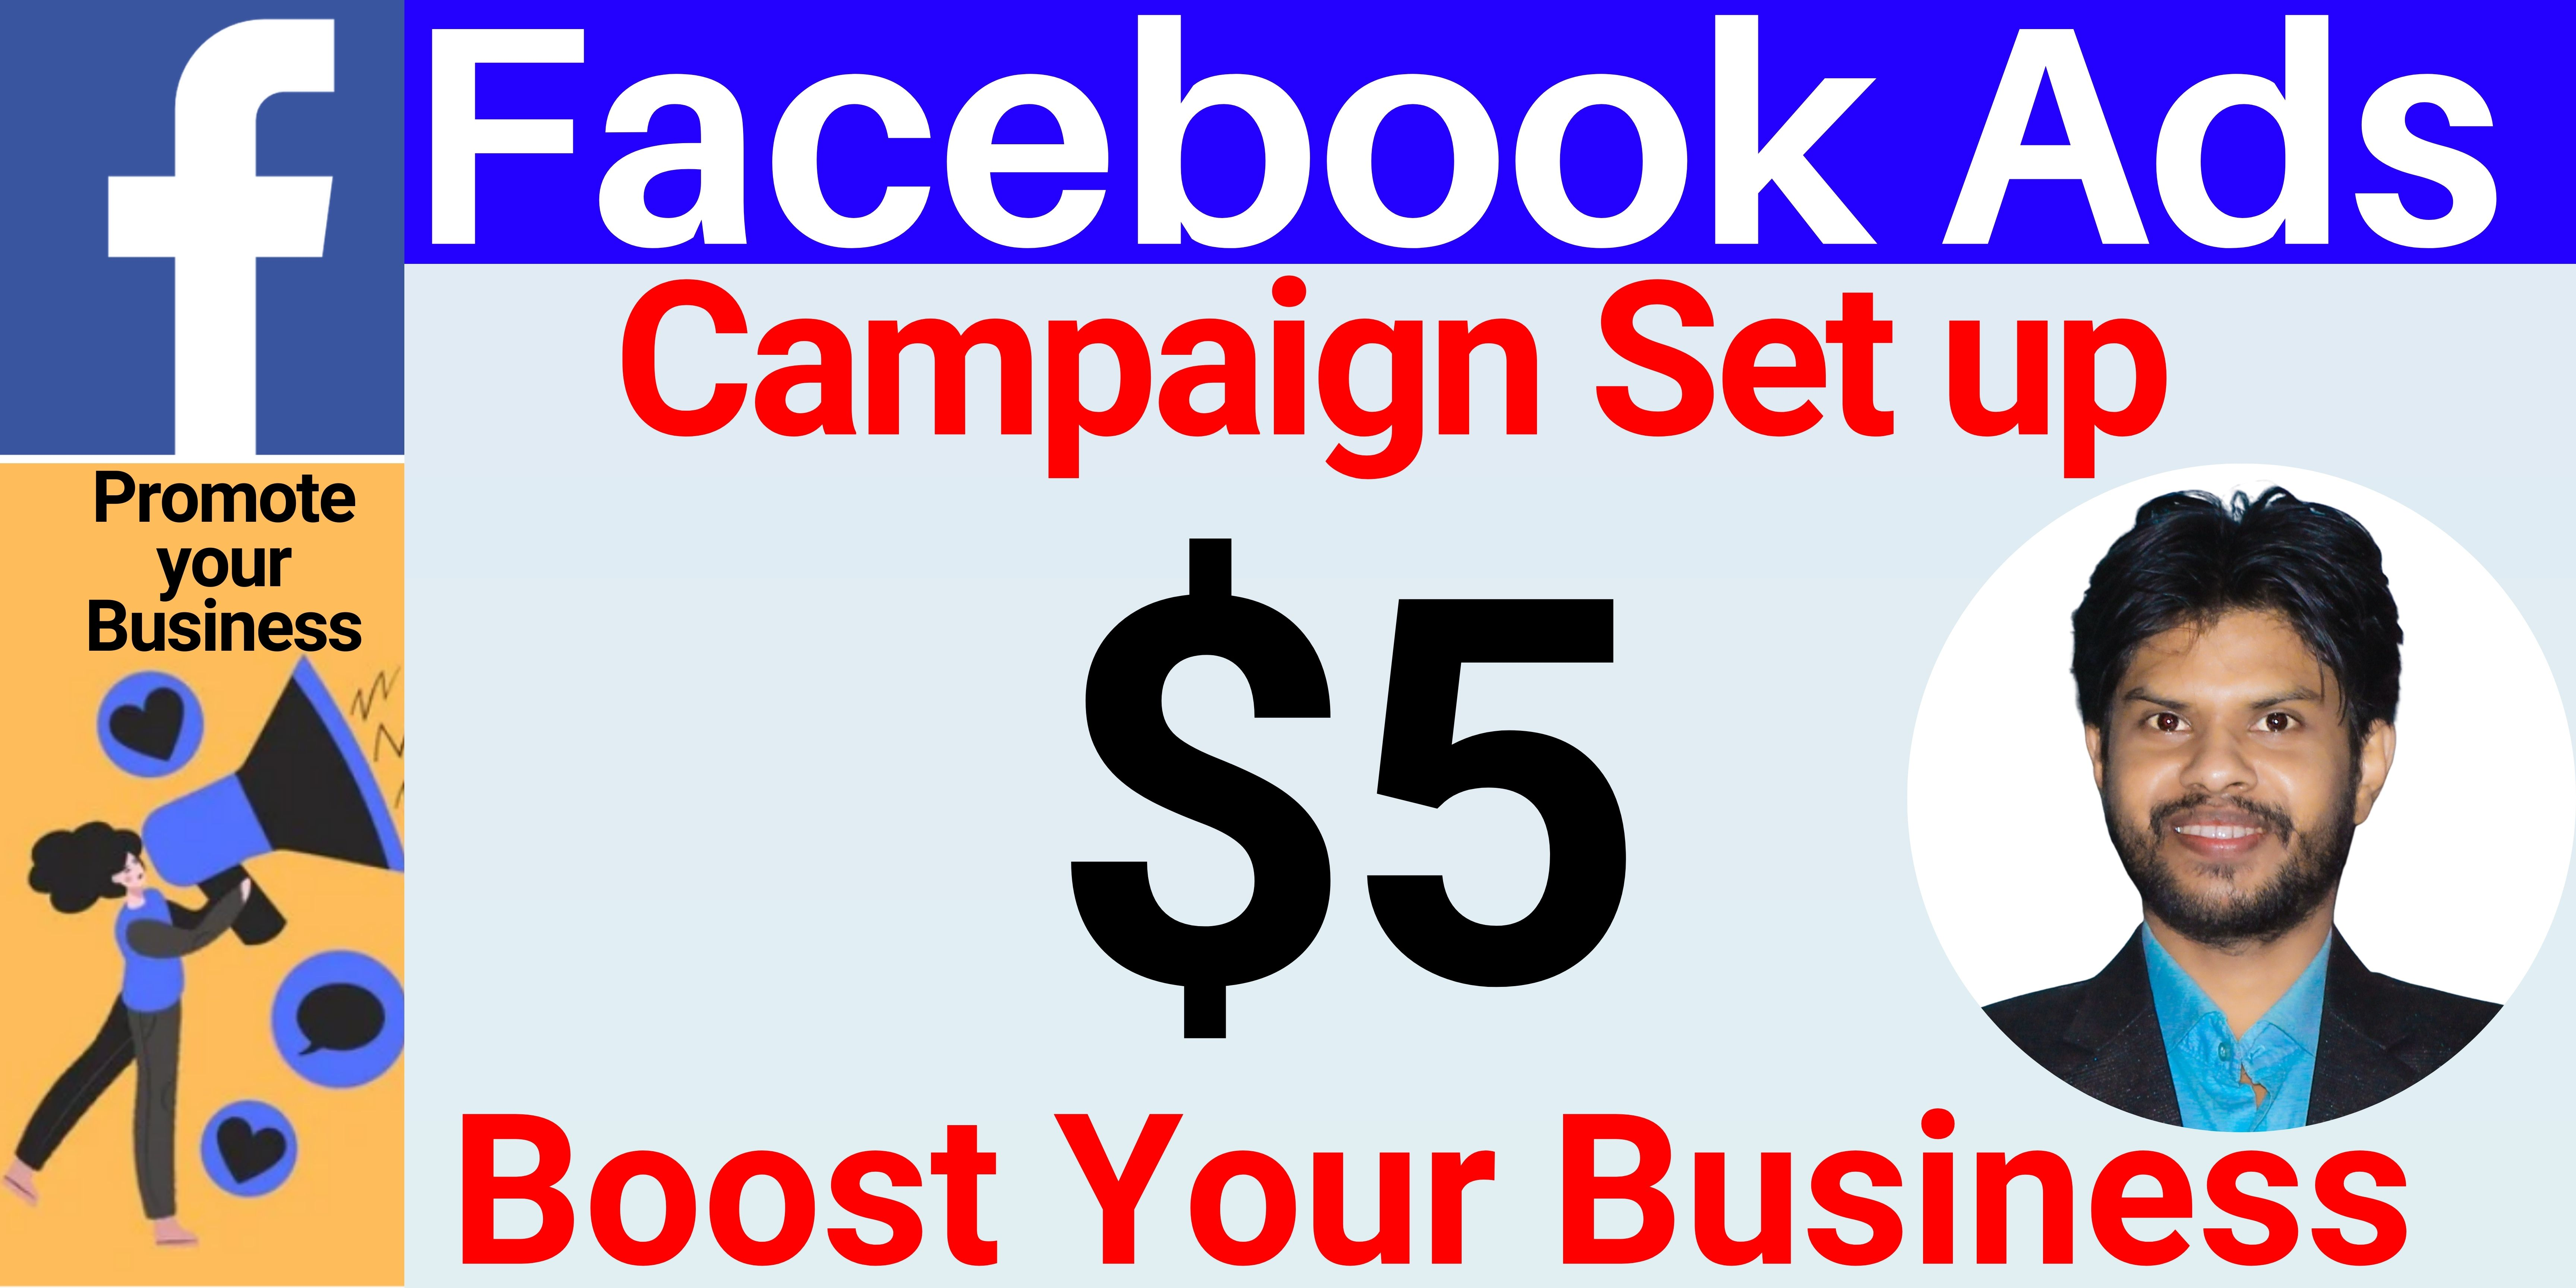 Facebook Ads Campaign Setup with Audience Research Manager